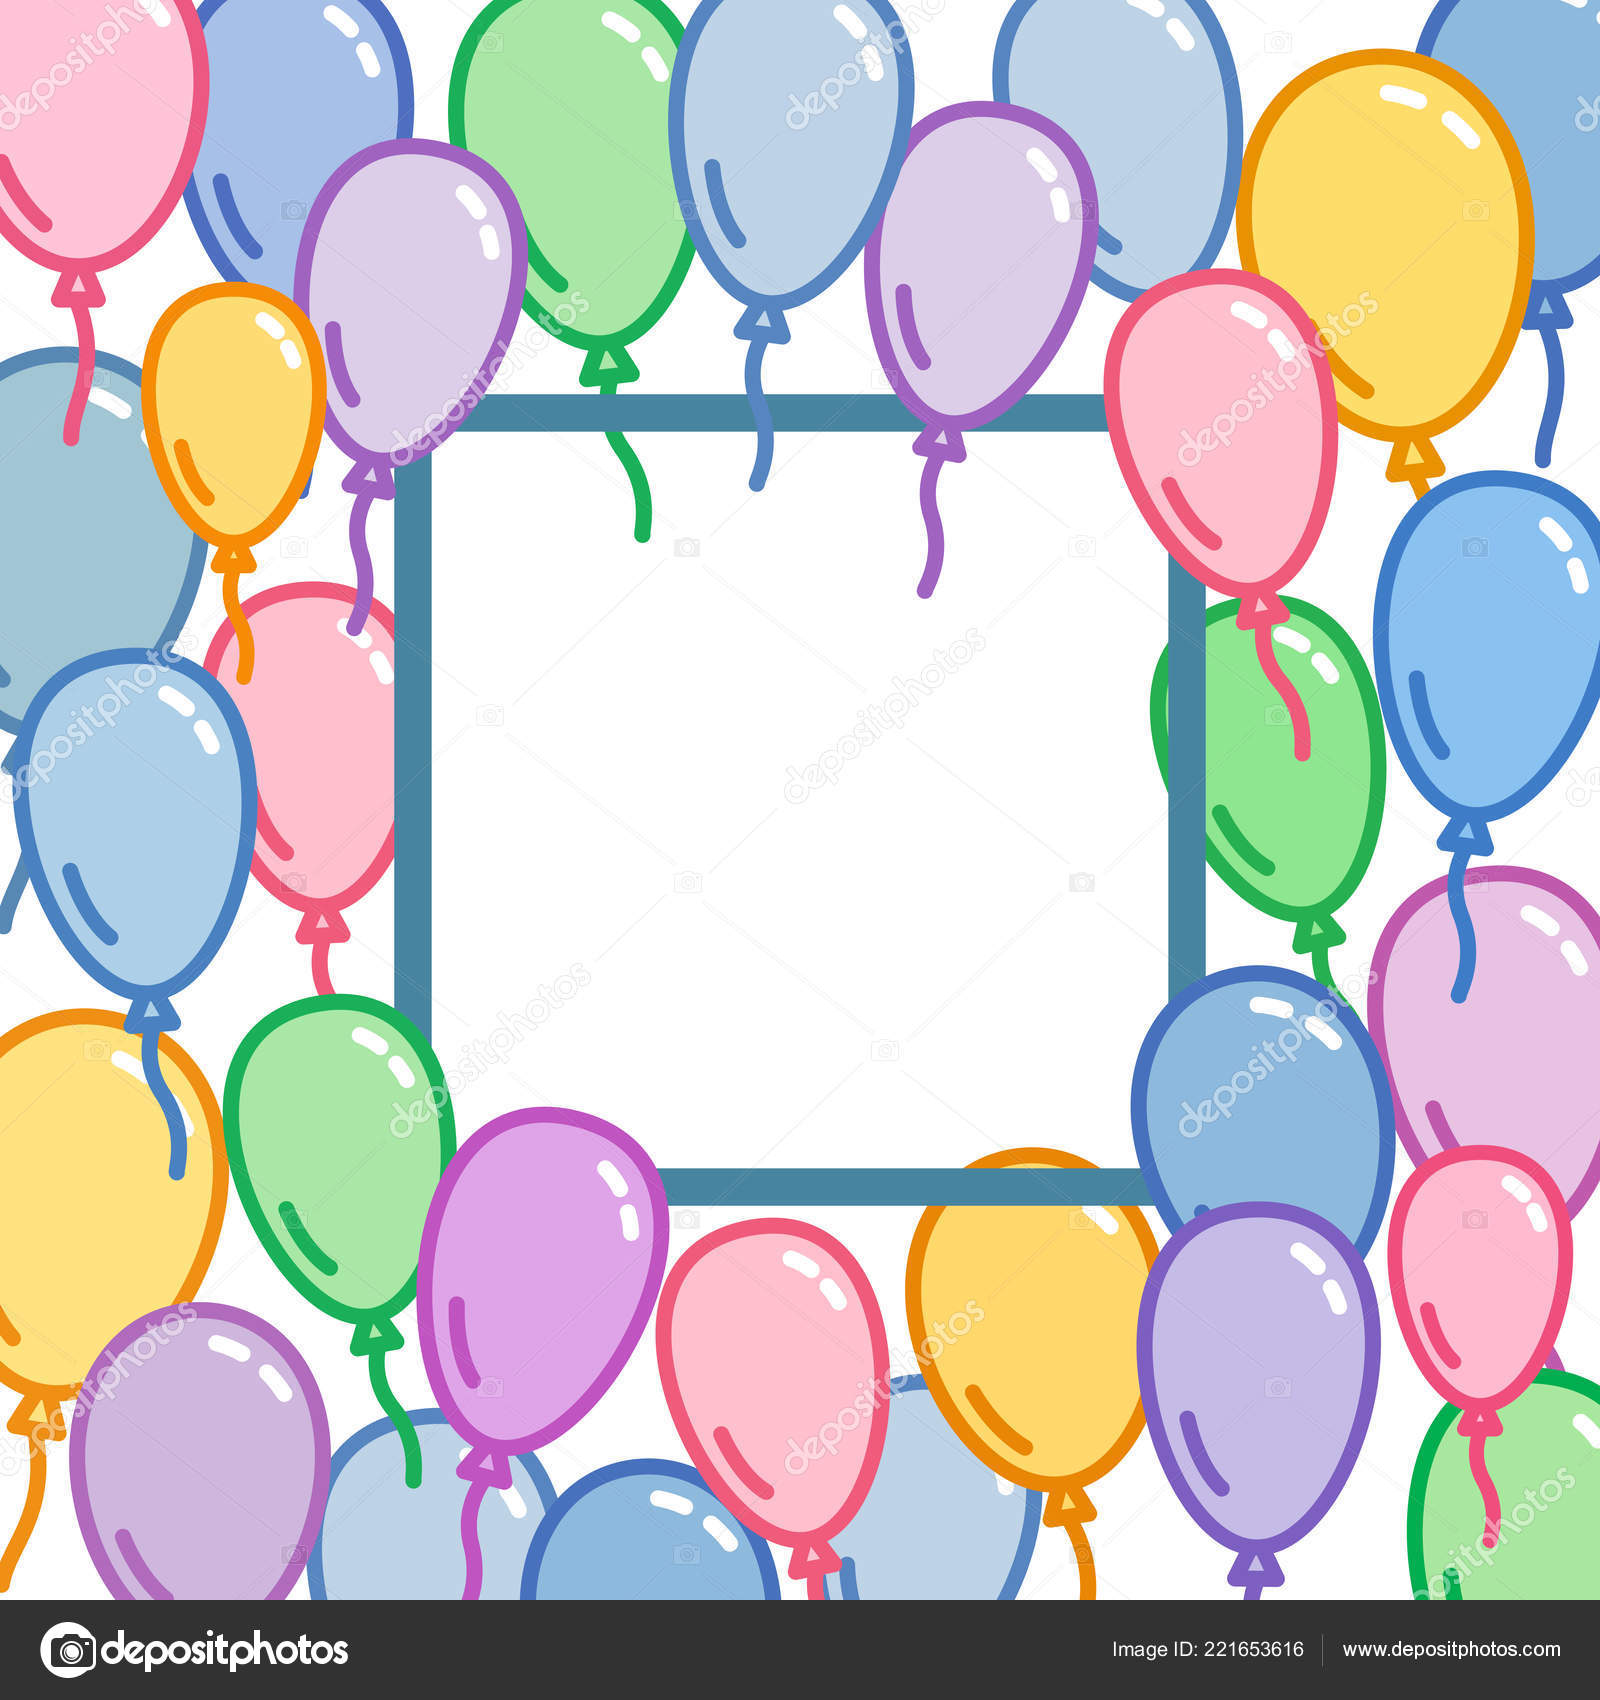 Square Place For Text Decoration With Colorful Balloons Naive And Simple Decorative Design Party Wallpaper Vector Illustration Banners Footers